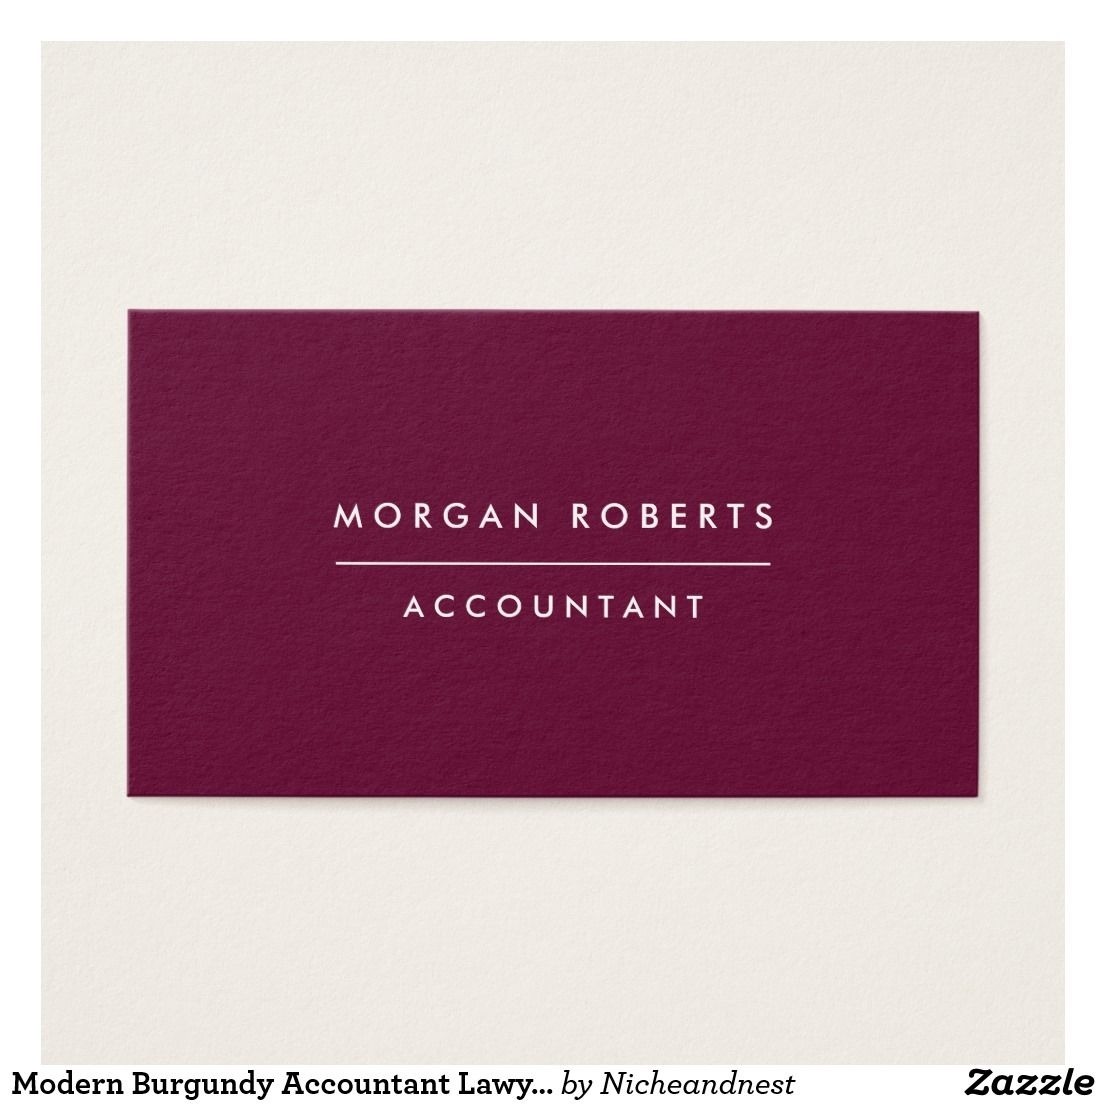 Modern Burgundy Accountant Lawyer or Professional Business Card ...